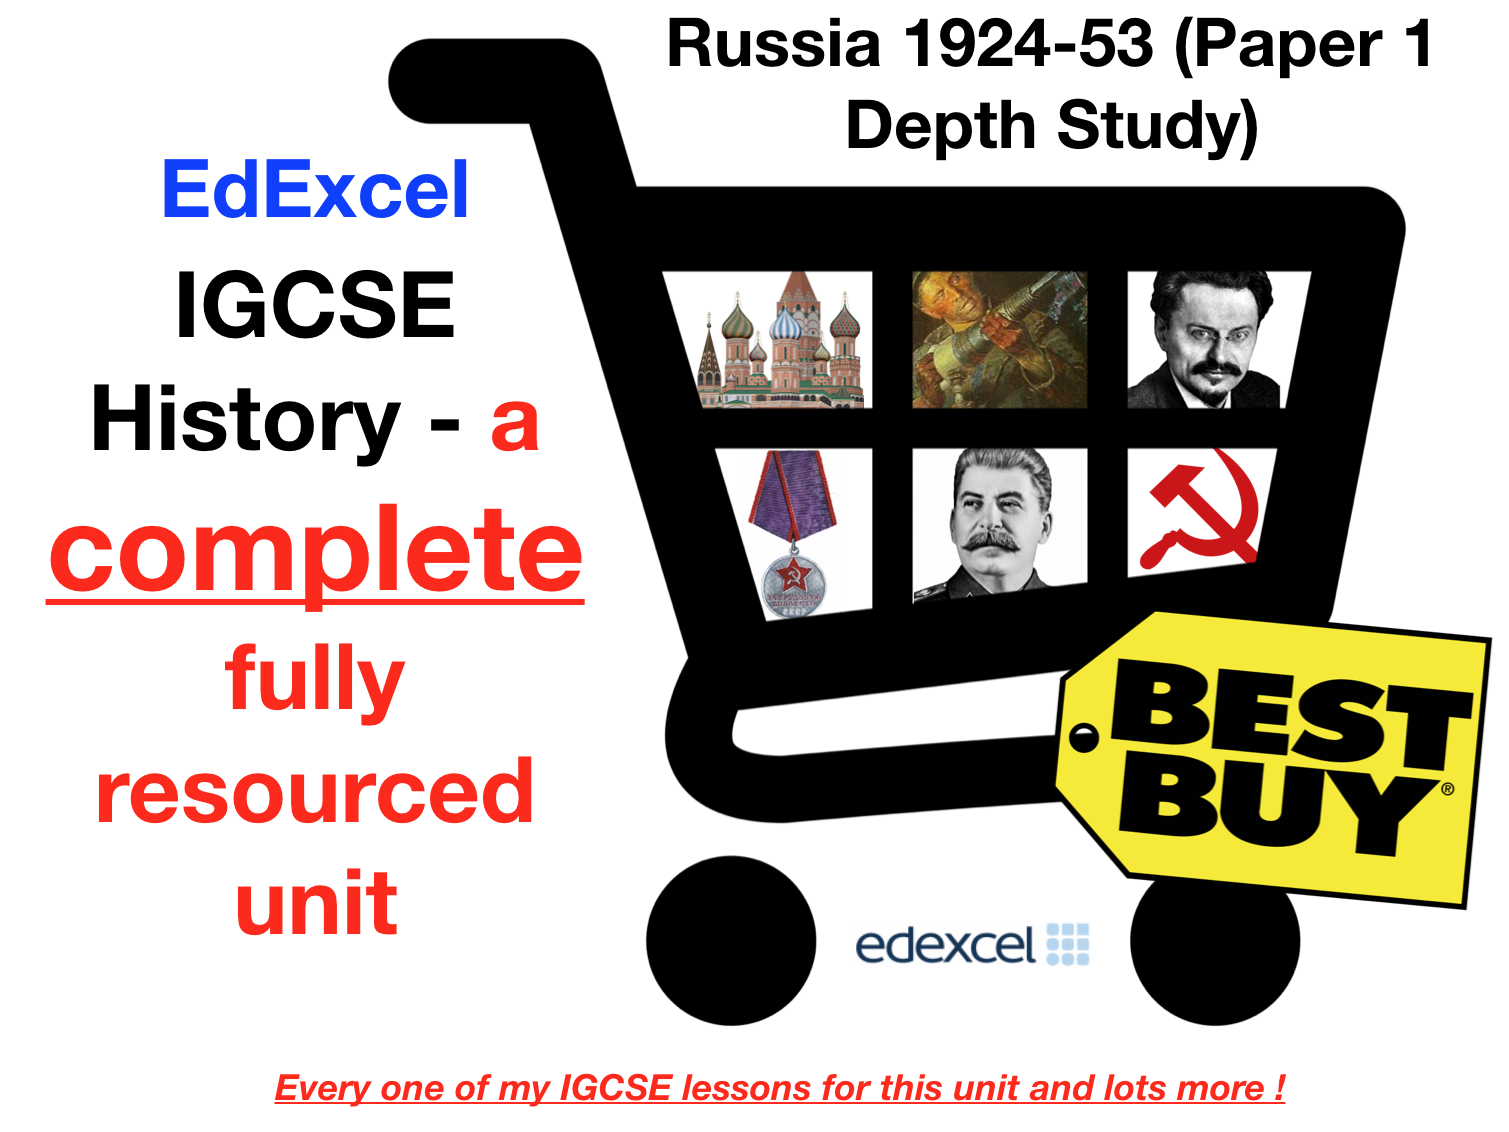 EdExcel IGCSE History Russia 1924-53 – Full Unit Paper 1 Depth Study Bundle (with Revision Menu)